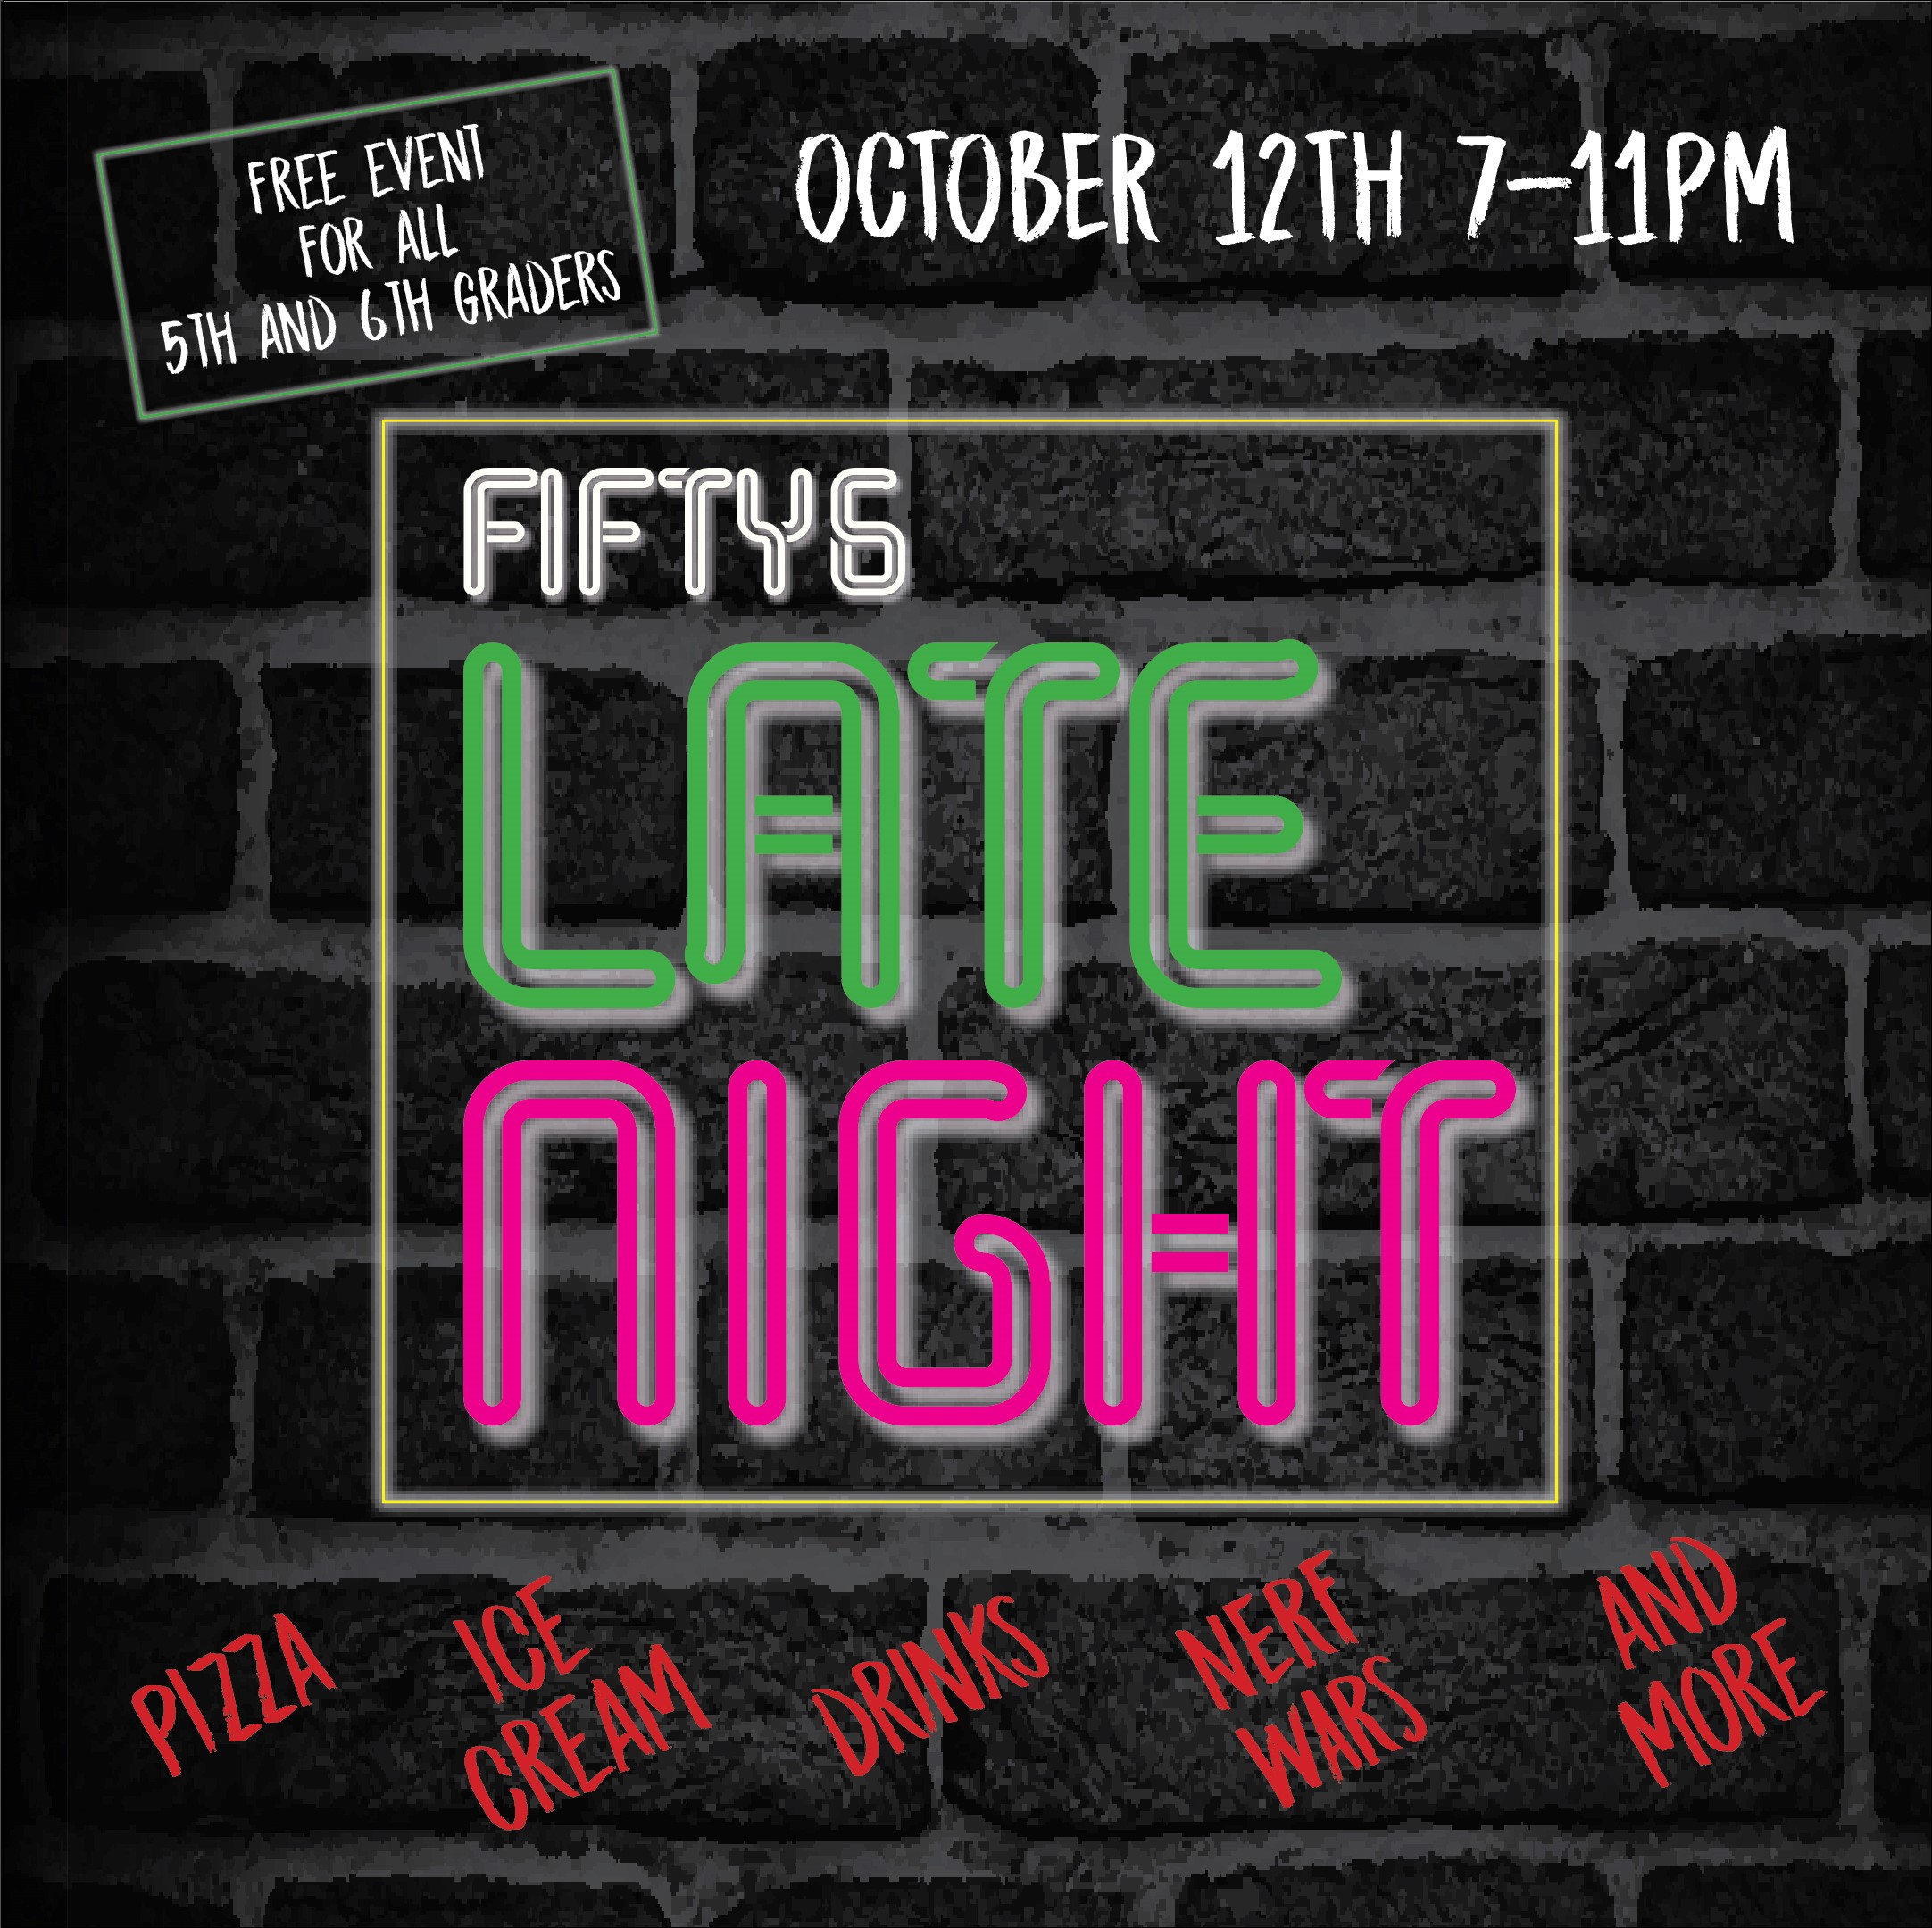 FIFTY6 LATE NIGHT | OCTOBER 12 | 7-11PM   Fifty6 Parents: Mark your calendars, fill you car with kiddos and drop them off with us for the Fifty6 Late Night!!! Pizza, Ice Cream, Nerf Wars... Need we say more?!?